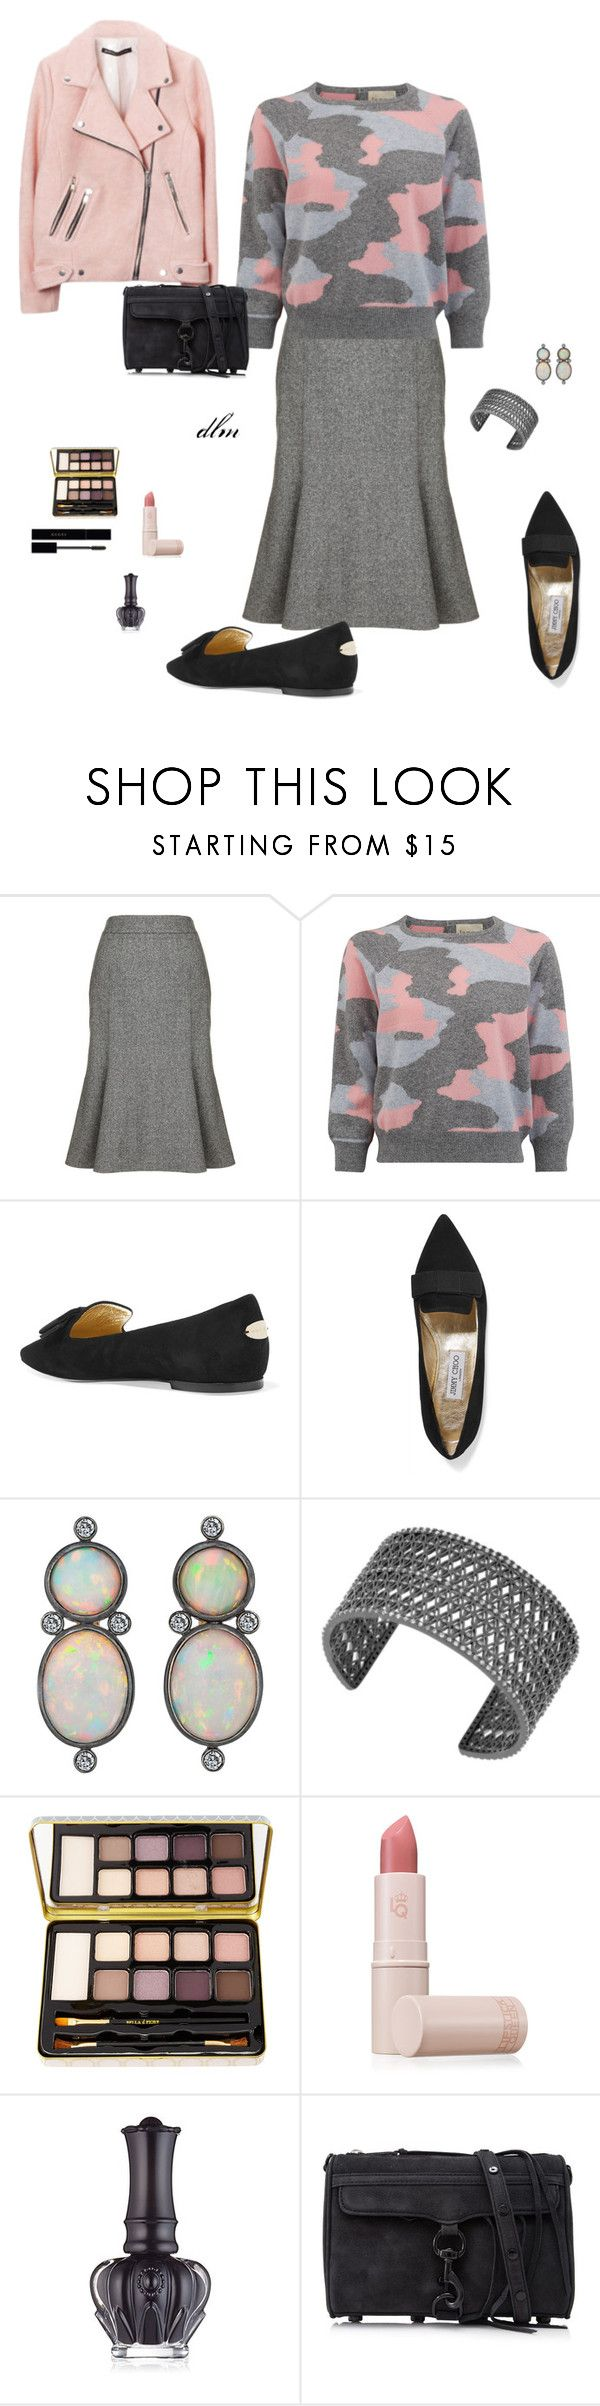 """Black"" by middletondonna ❤ liked on Polyvore featuring Monsoon, Jumper 1234, Jimmy Choo, Lucky Brand, Bella Il Fiore, Lipstick Queen, Anna Sui, Rebecca Minkoff and Gucci"